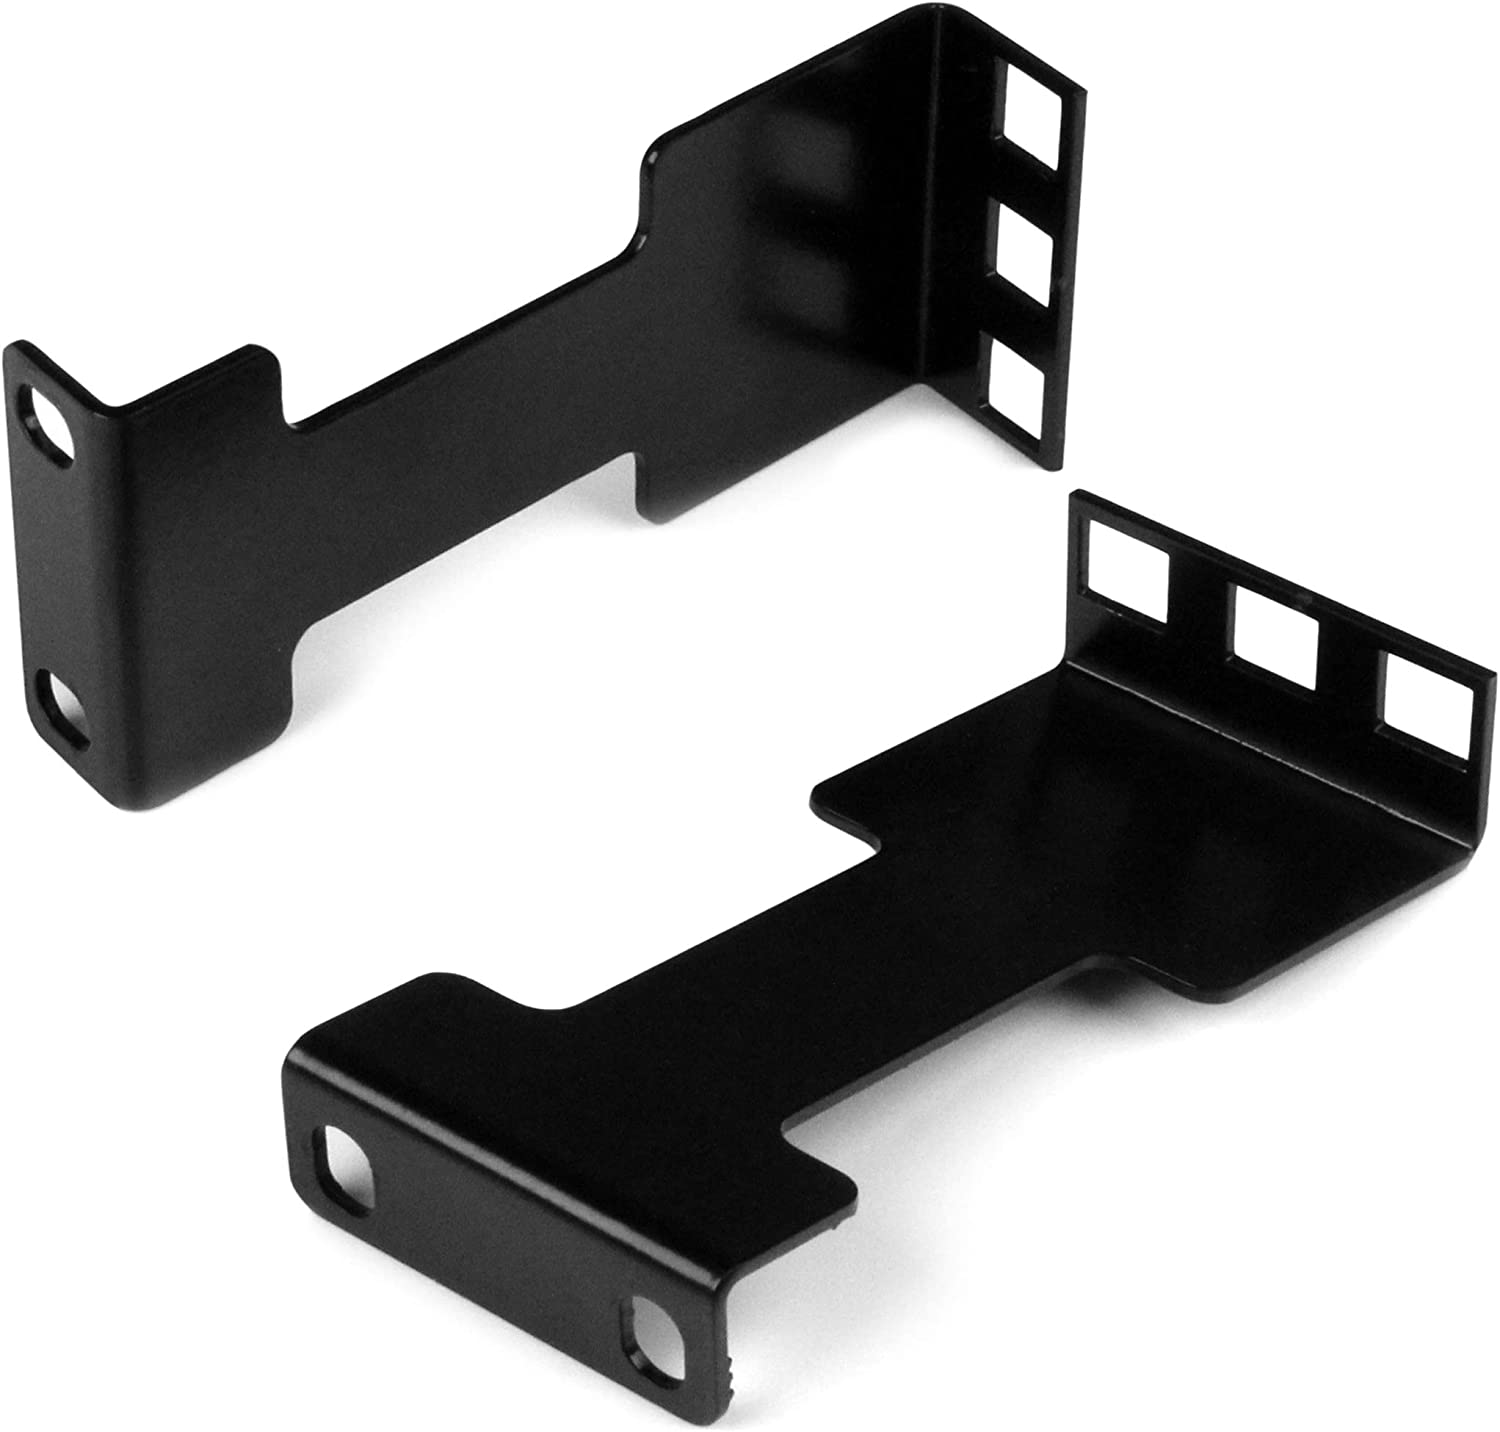 Indianapolis Mall StarTech.com Rail Depth Adapter Kit for Racks Server New product 10 in. - 4